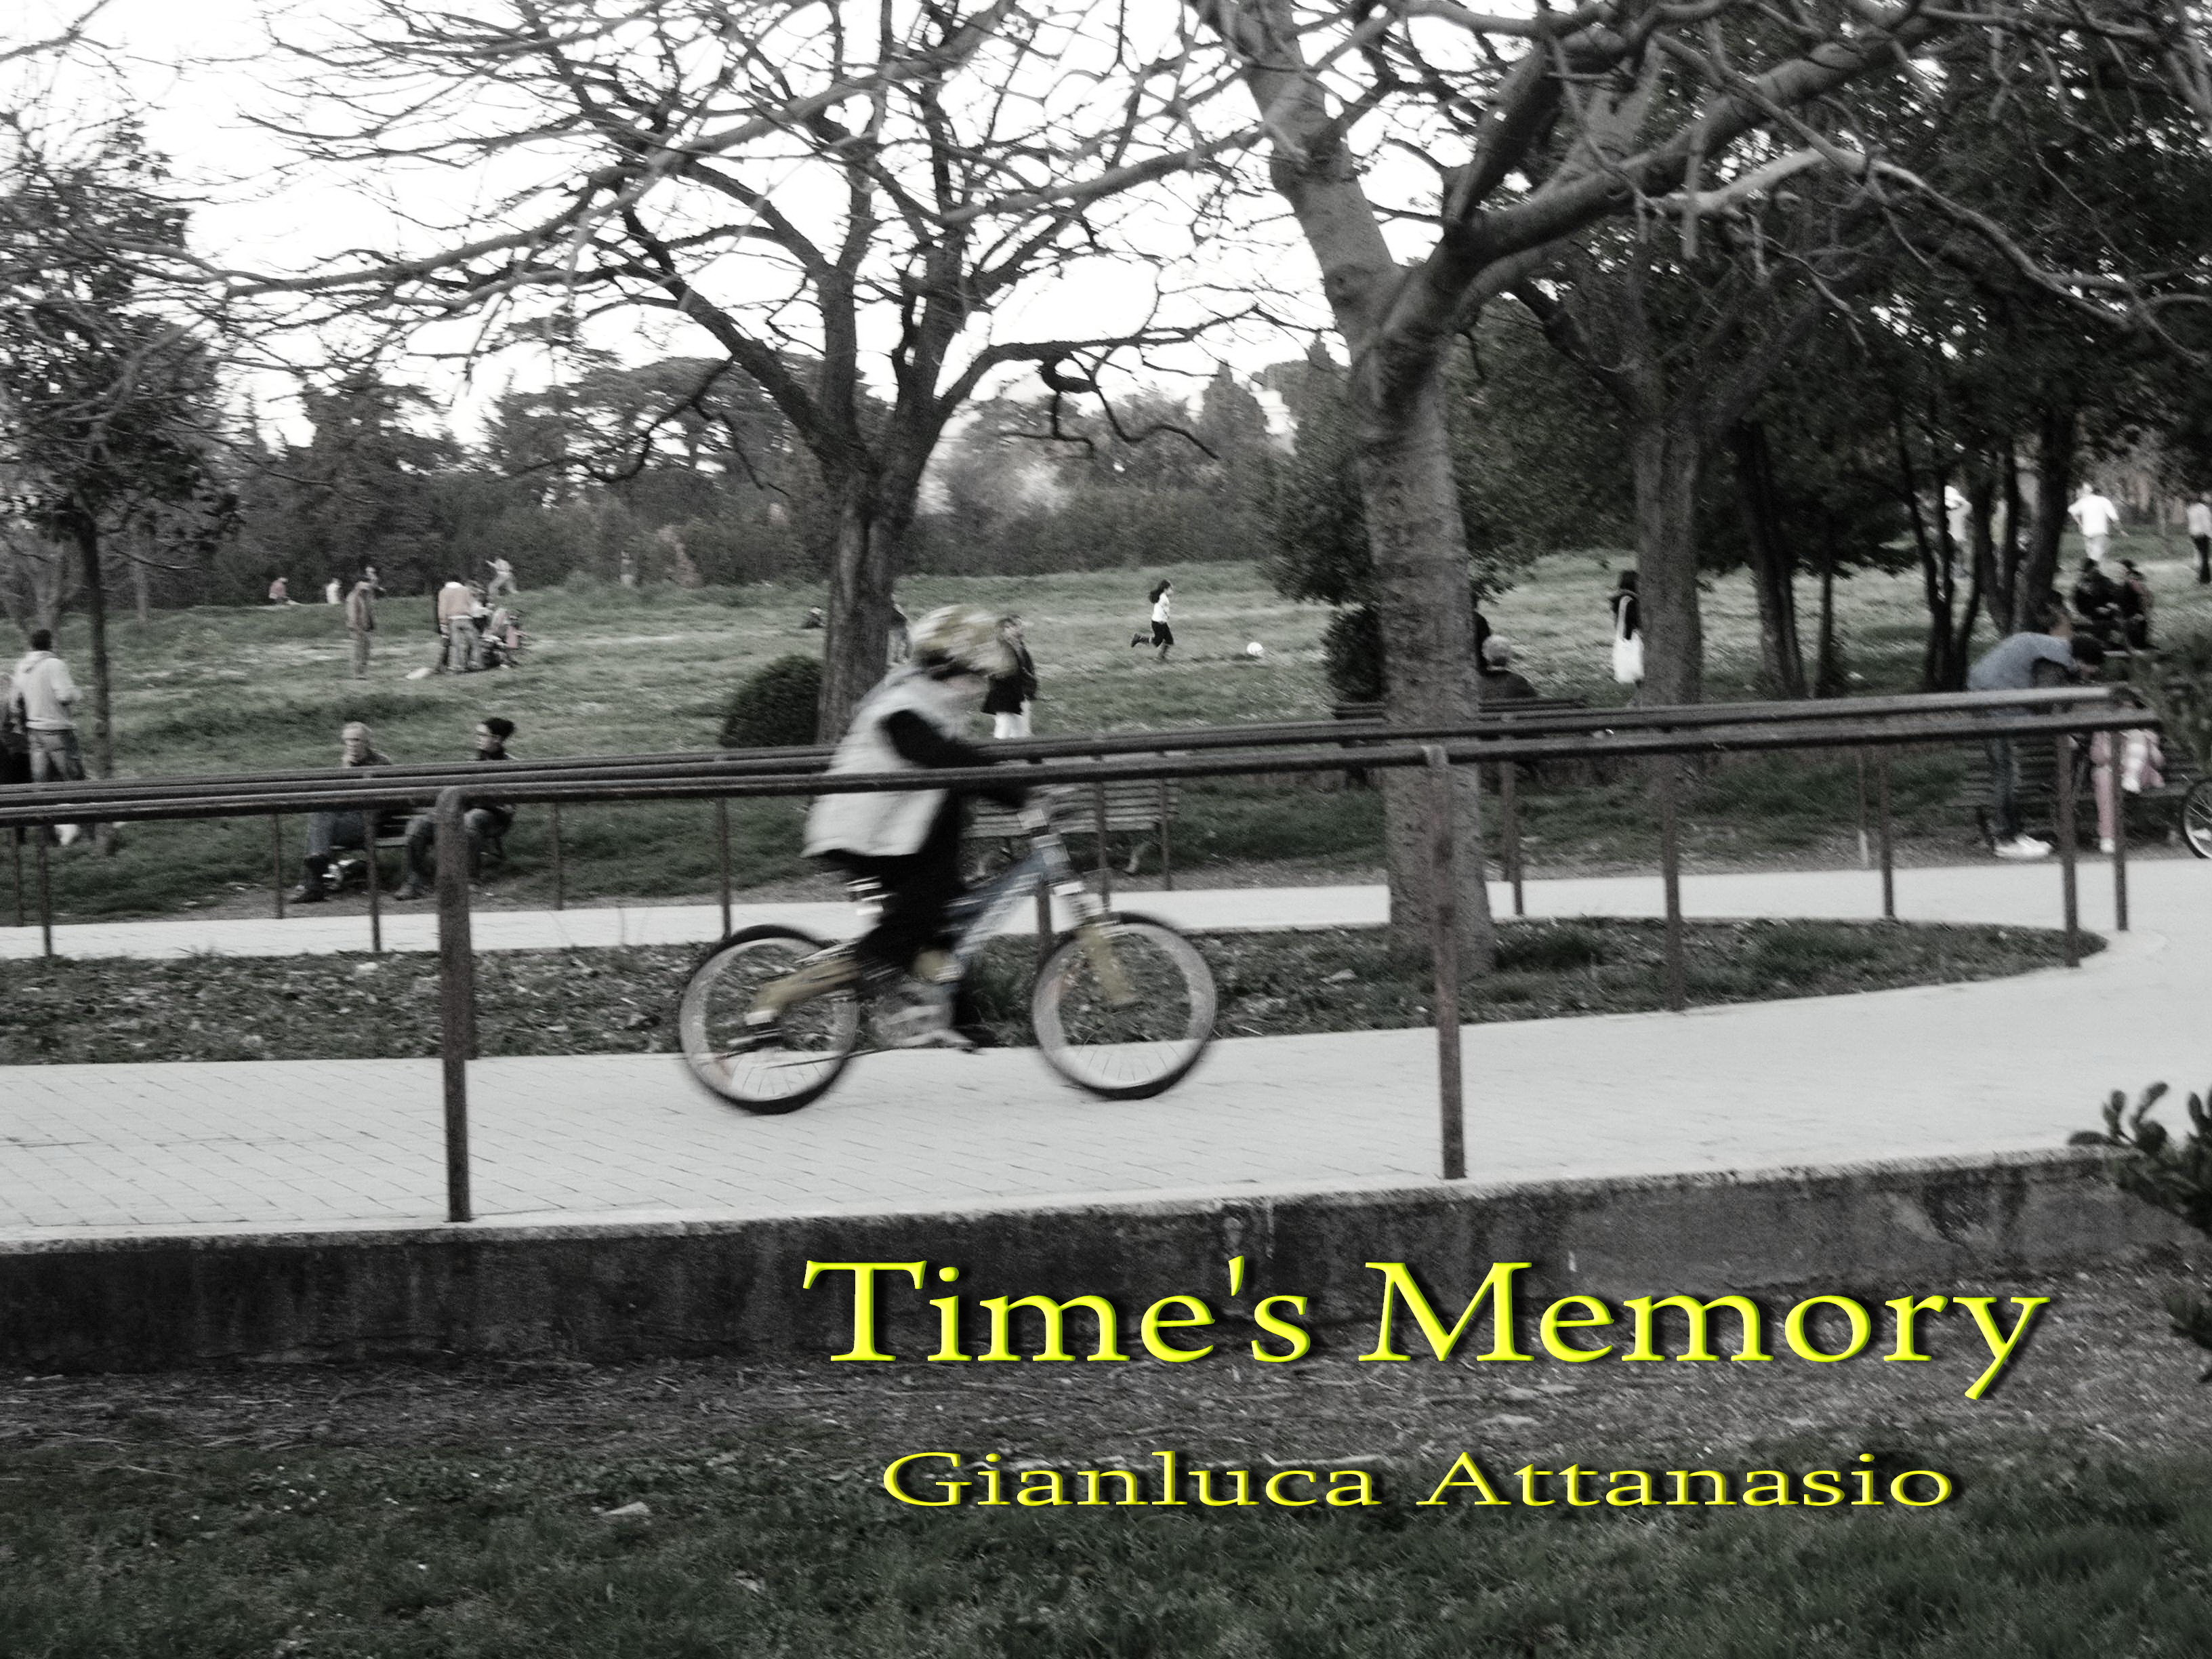 Time's memory